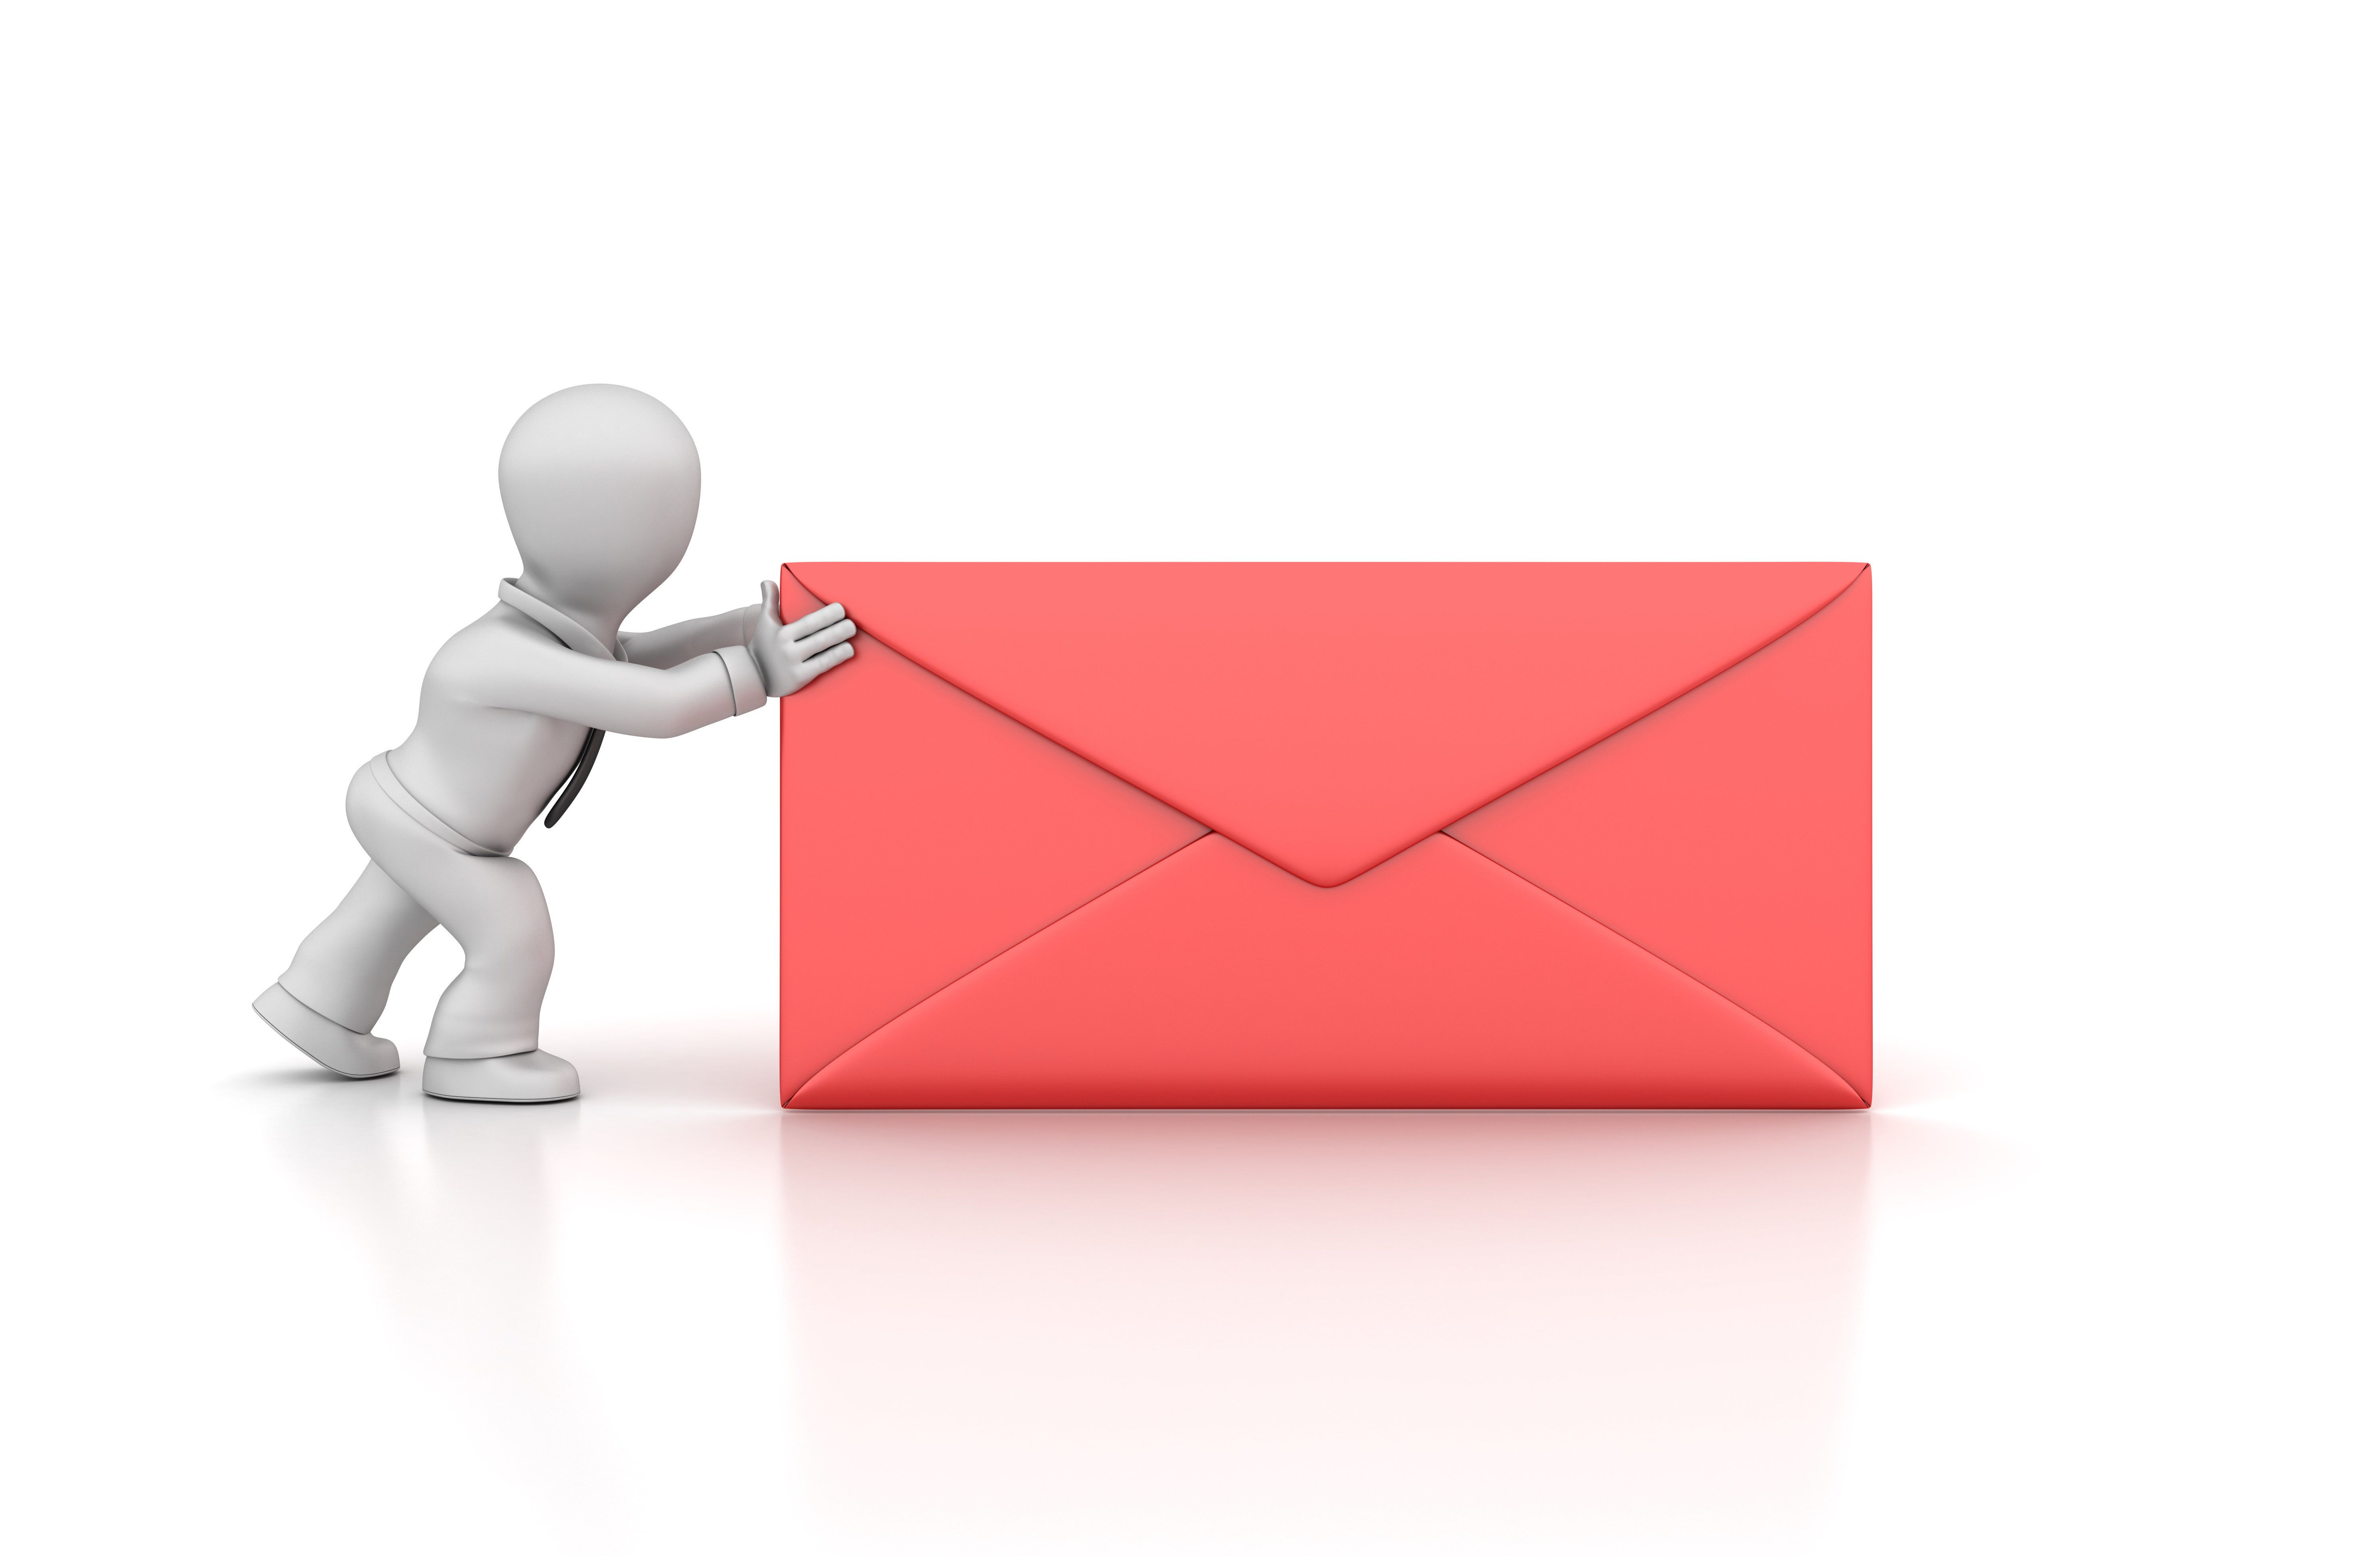 Business Character and Envelope - White Background - 3D Rendering